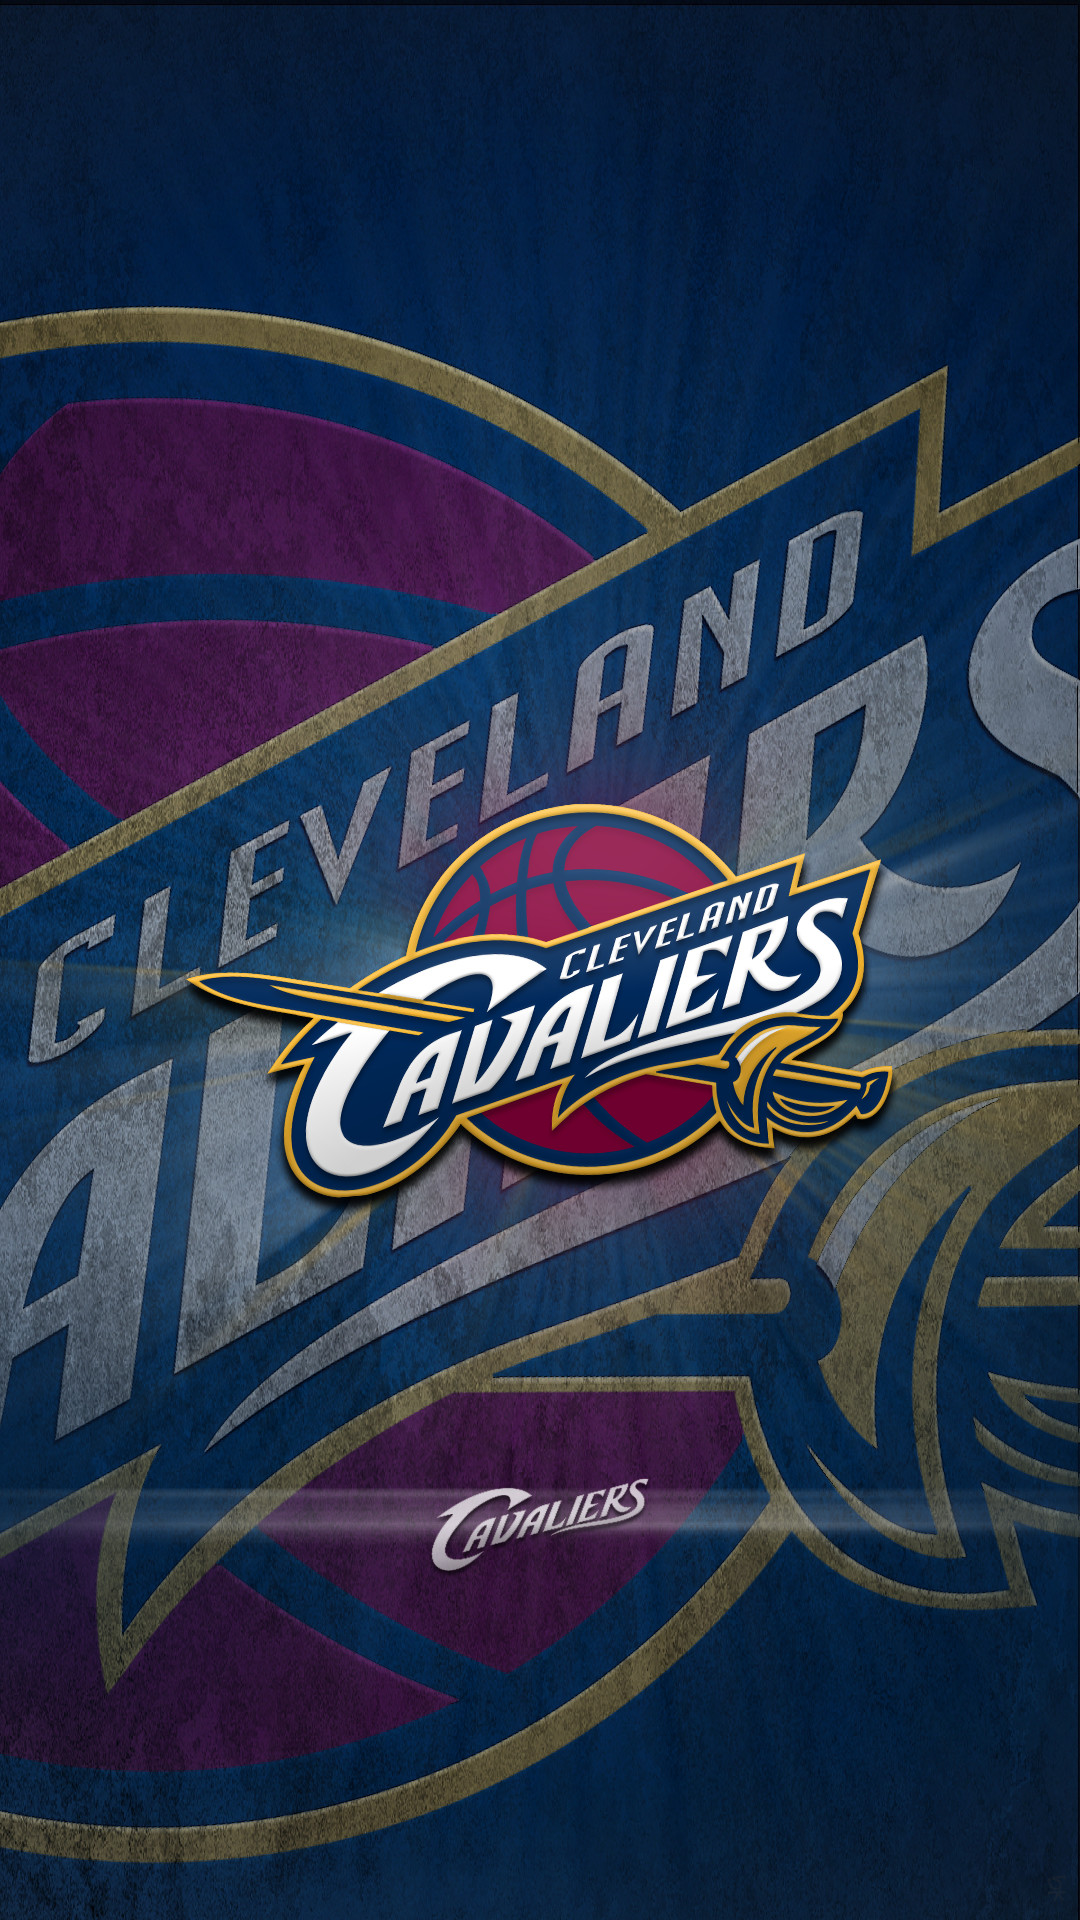 Cleveland Cavaliers Basketball Wallpapers 75 Images HD Wallpapers Download Free Images Wallpaper [1000image.com]